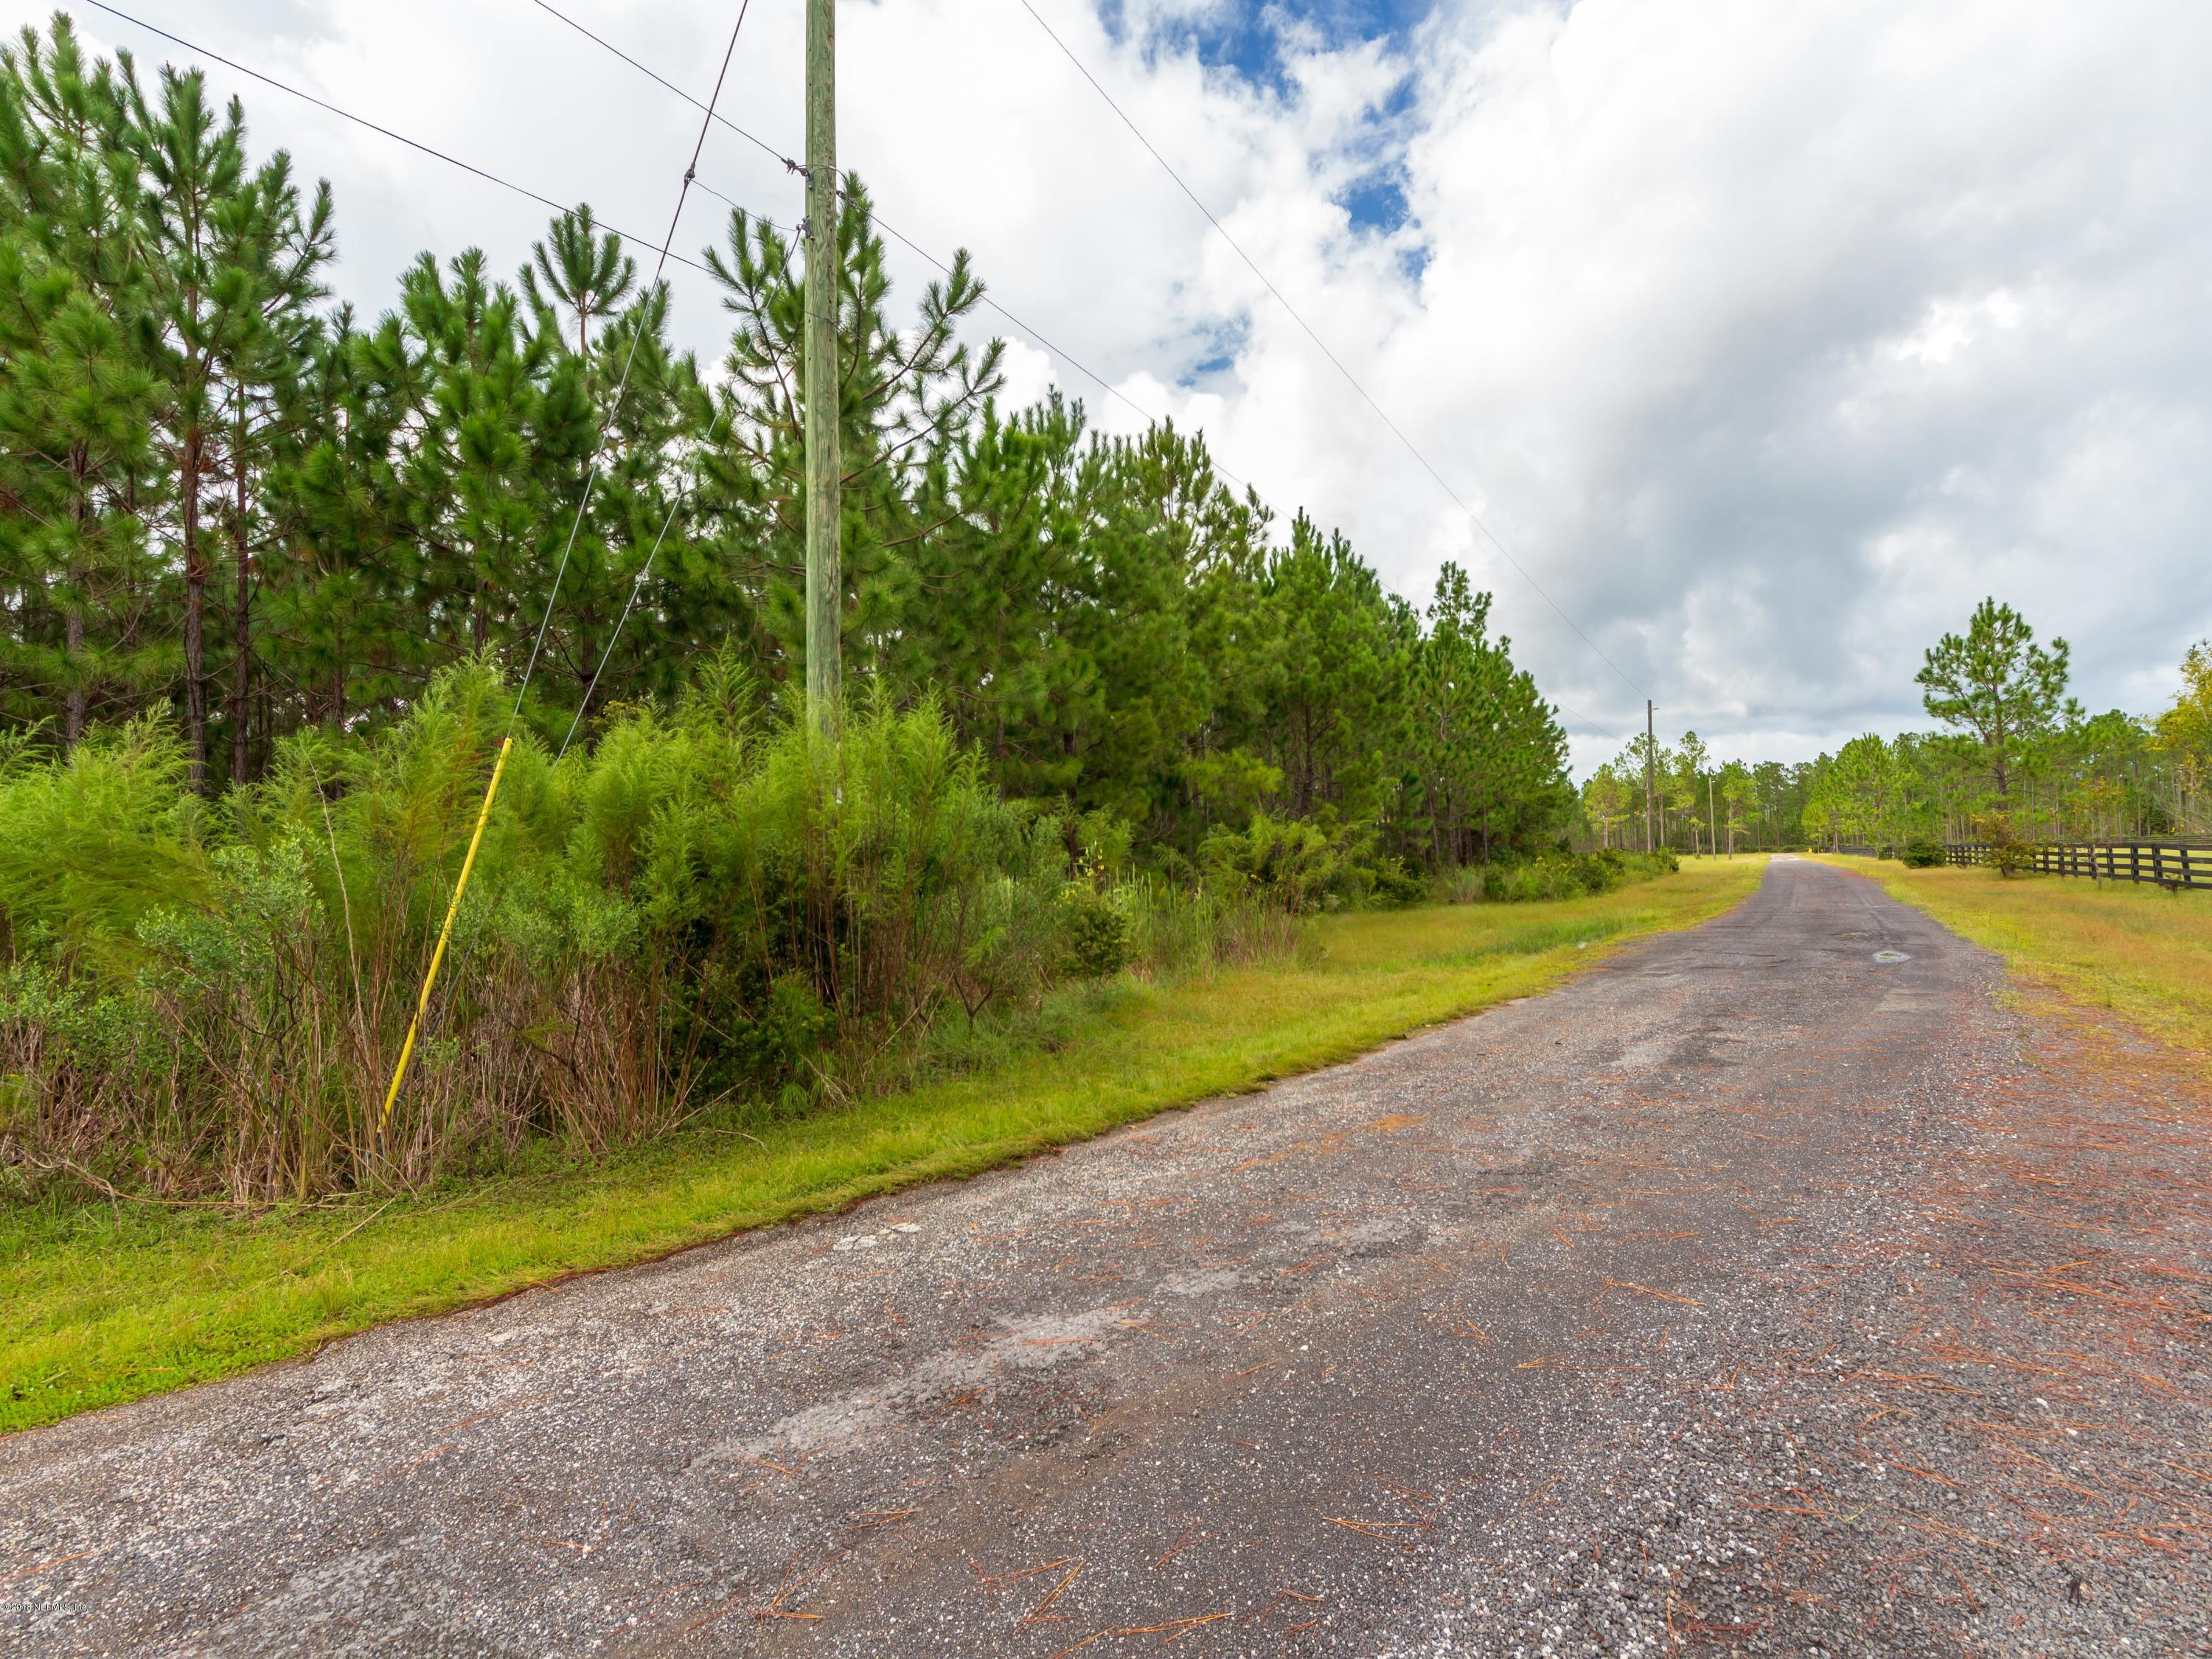 0 FOREST TRAIL, JACKSONVILLE, FLORIDA 32234, ,Vacant land,For sale,FOREST TRAIL,961821